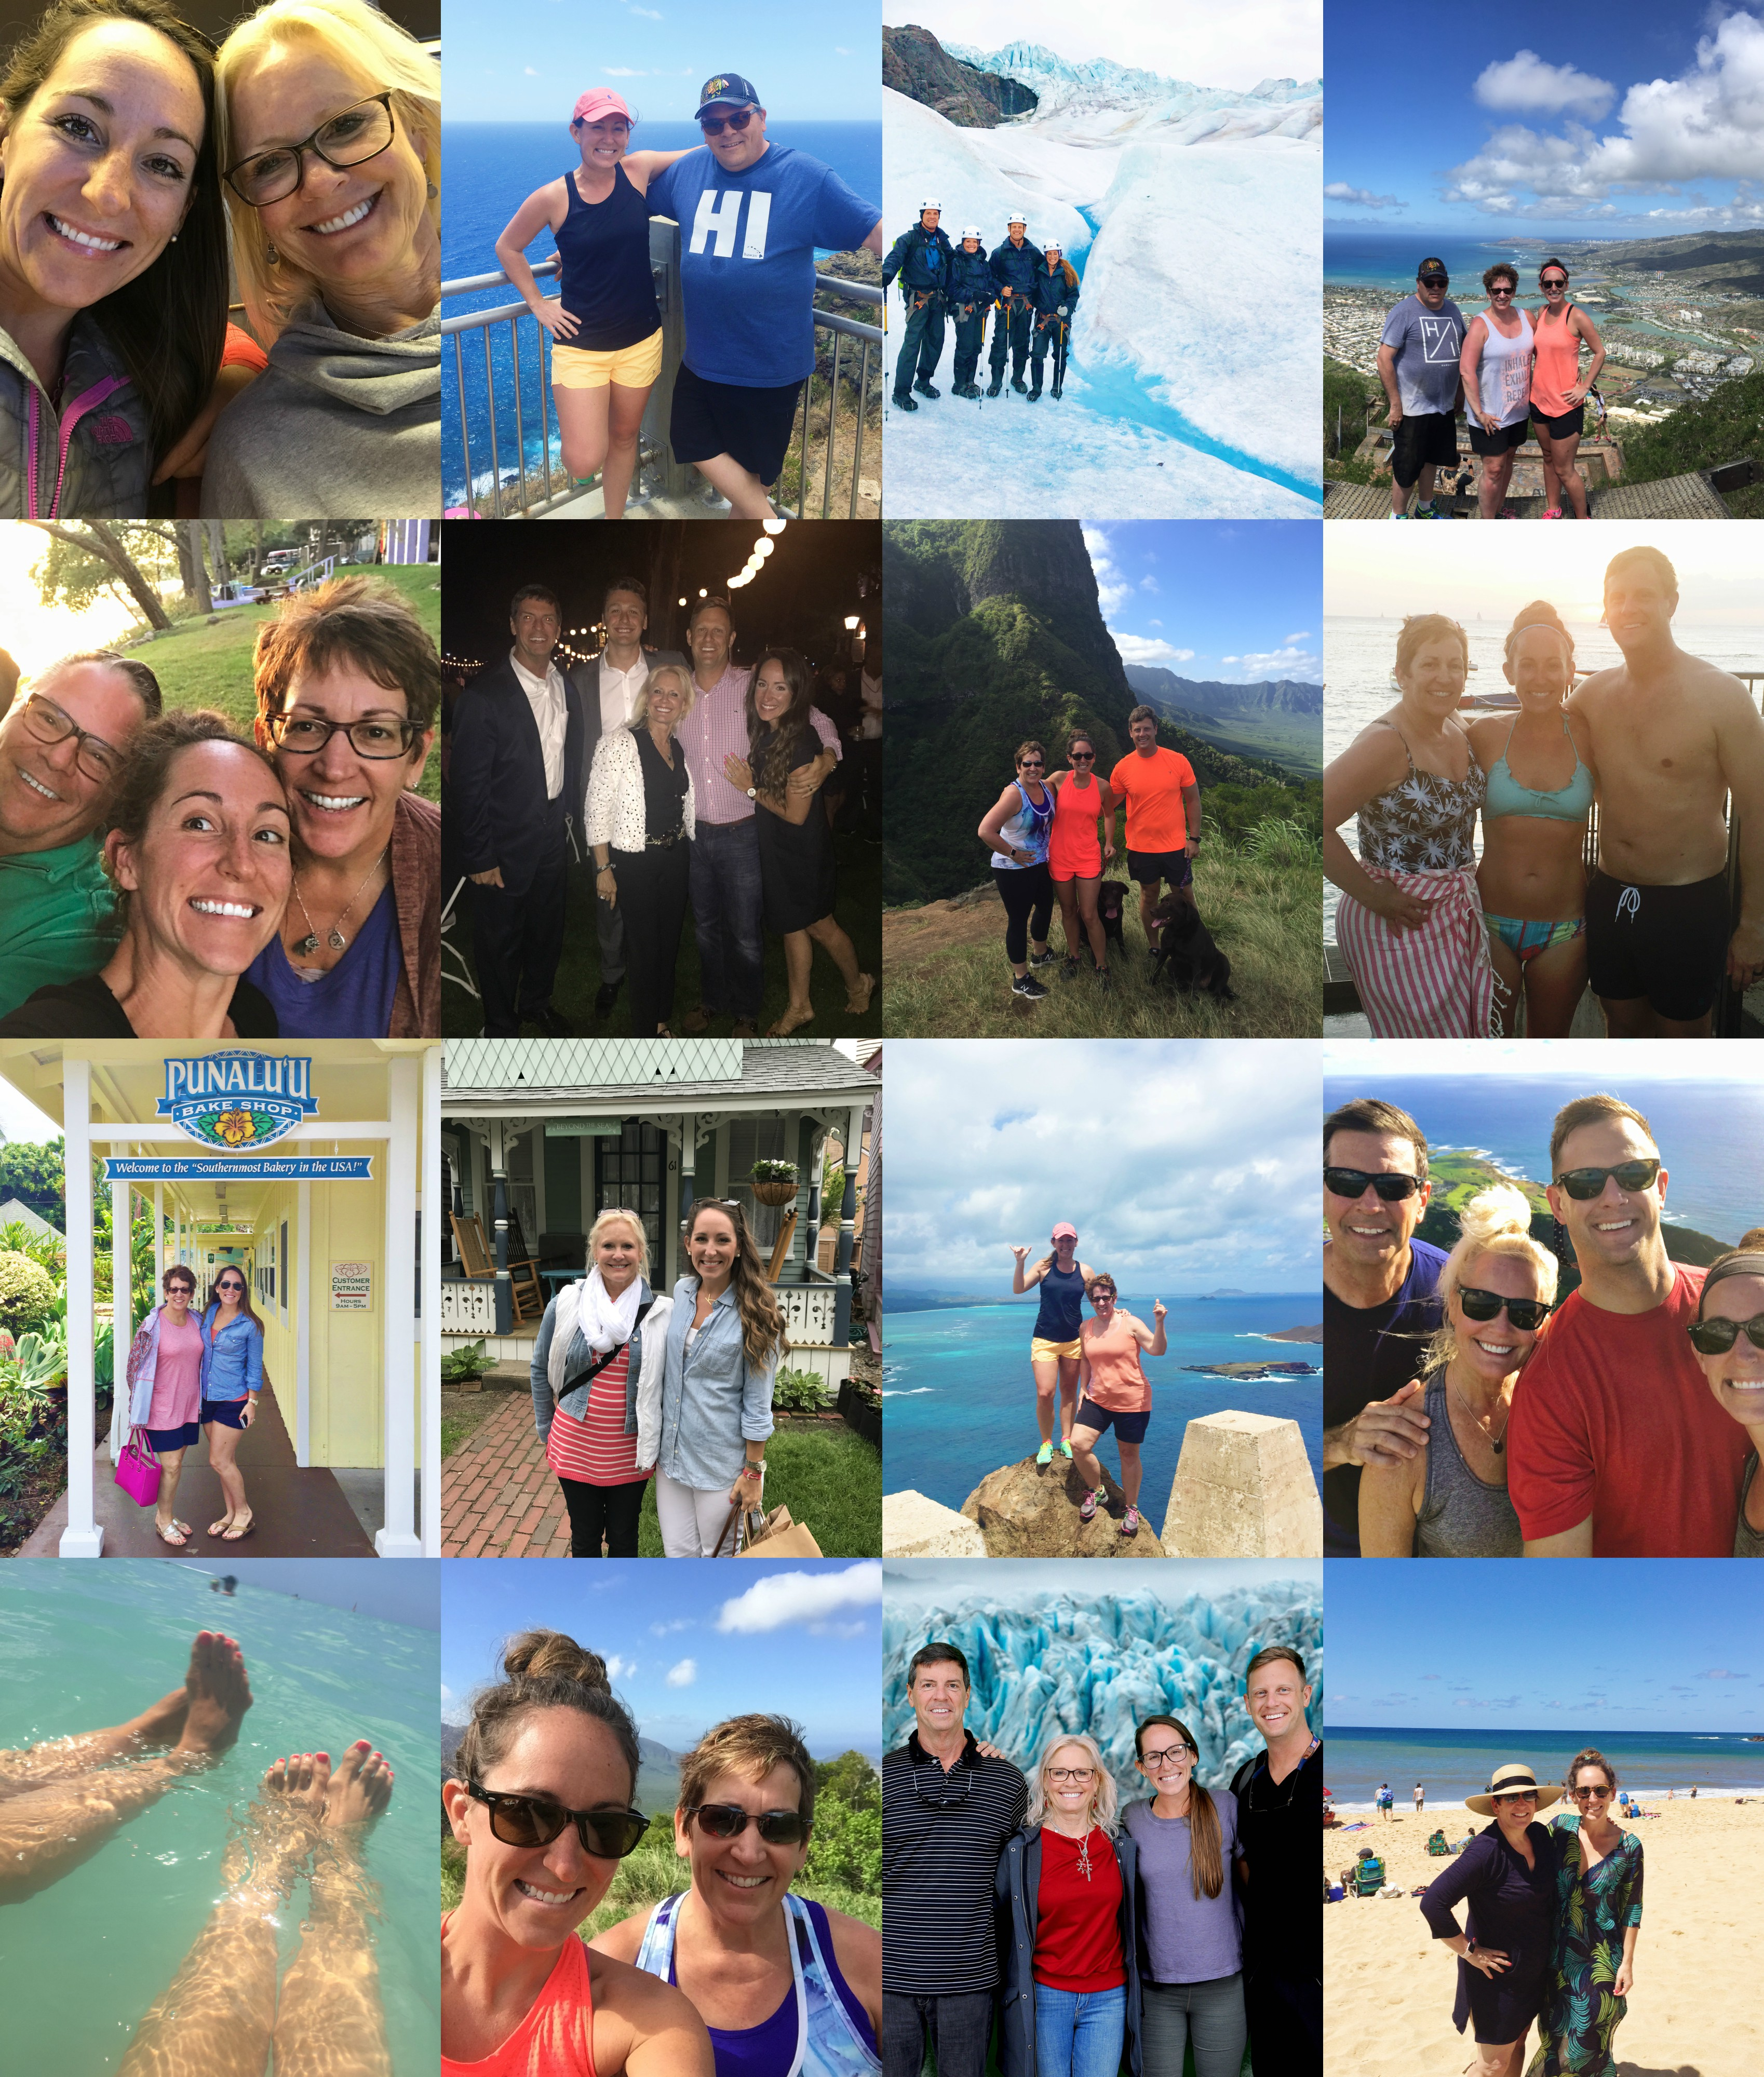 5 Reasons To Travel With Your Parents - Travel - Traveling with family - Communikait by Kait Hanson #travel #family